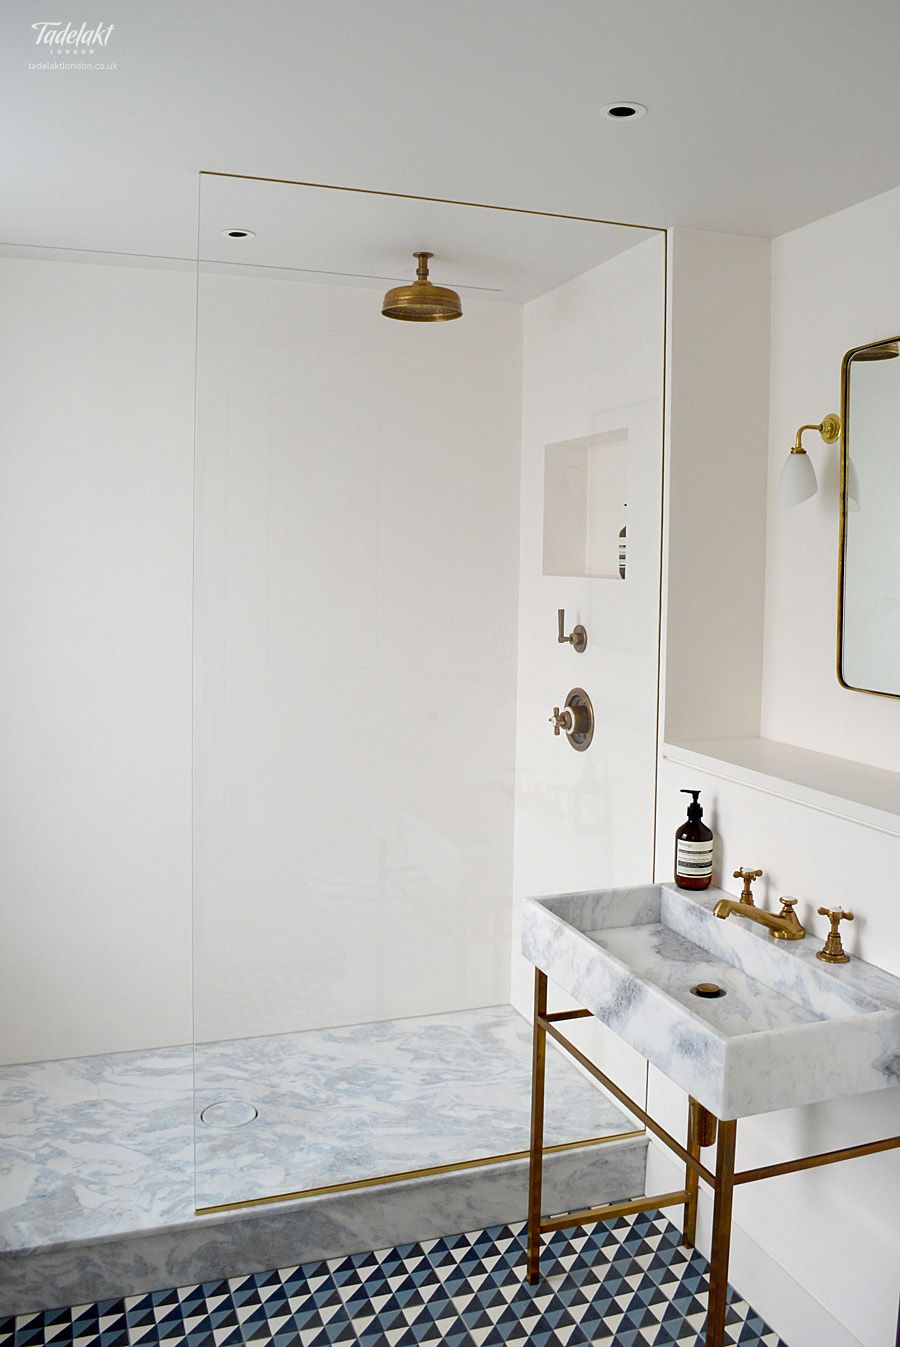 Tadelakt In Natural White In Shower Room Alternative To